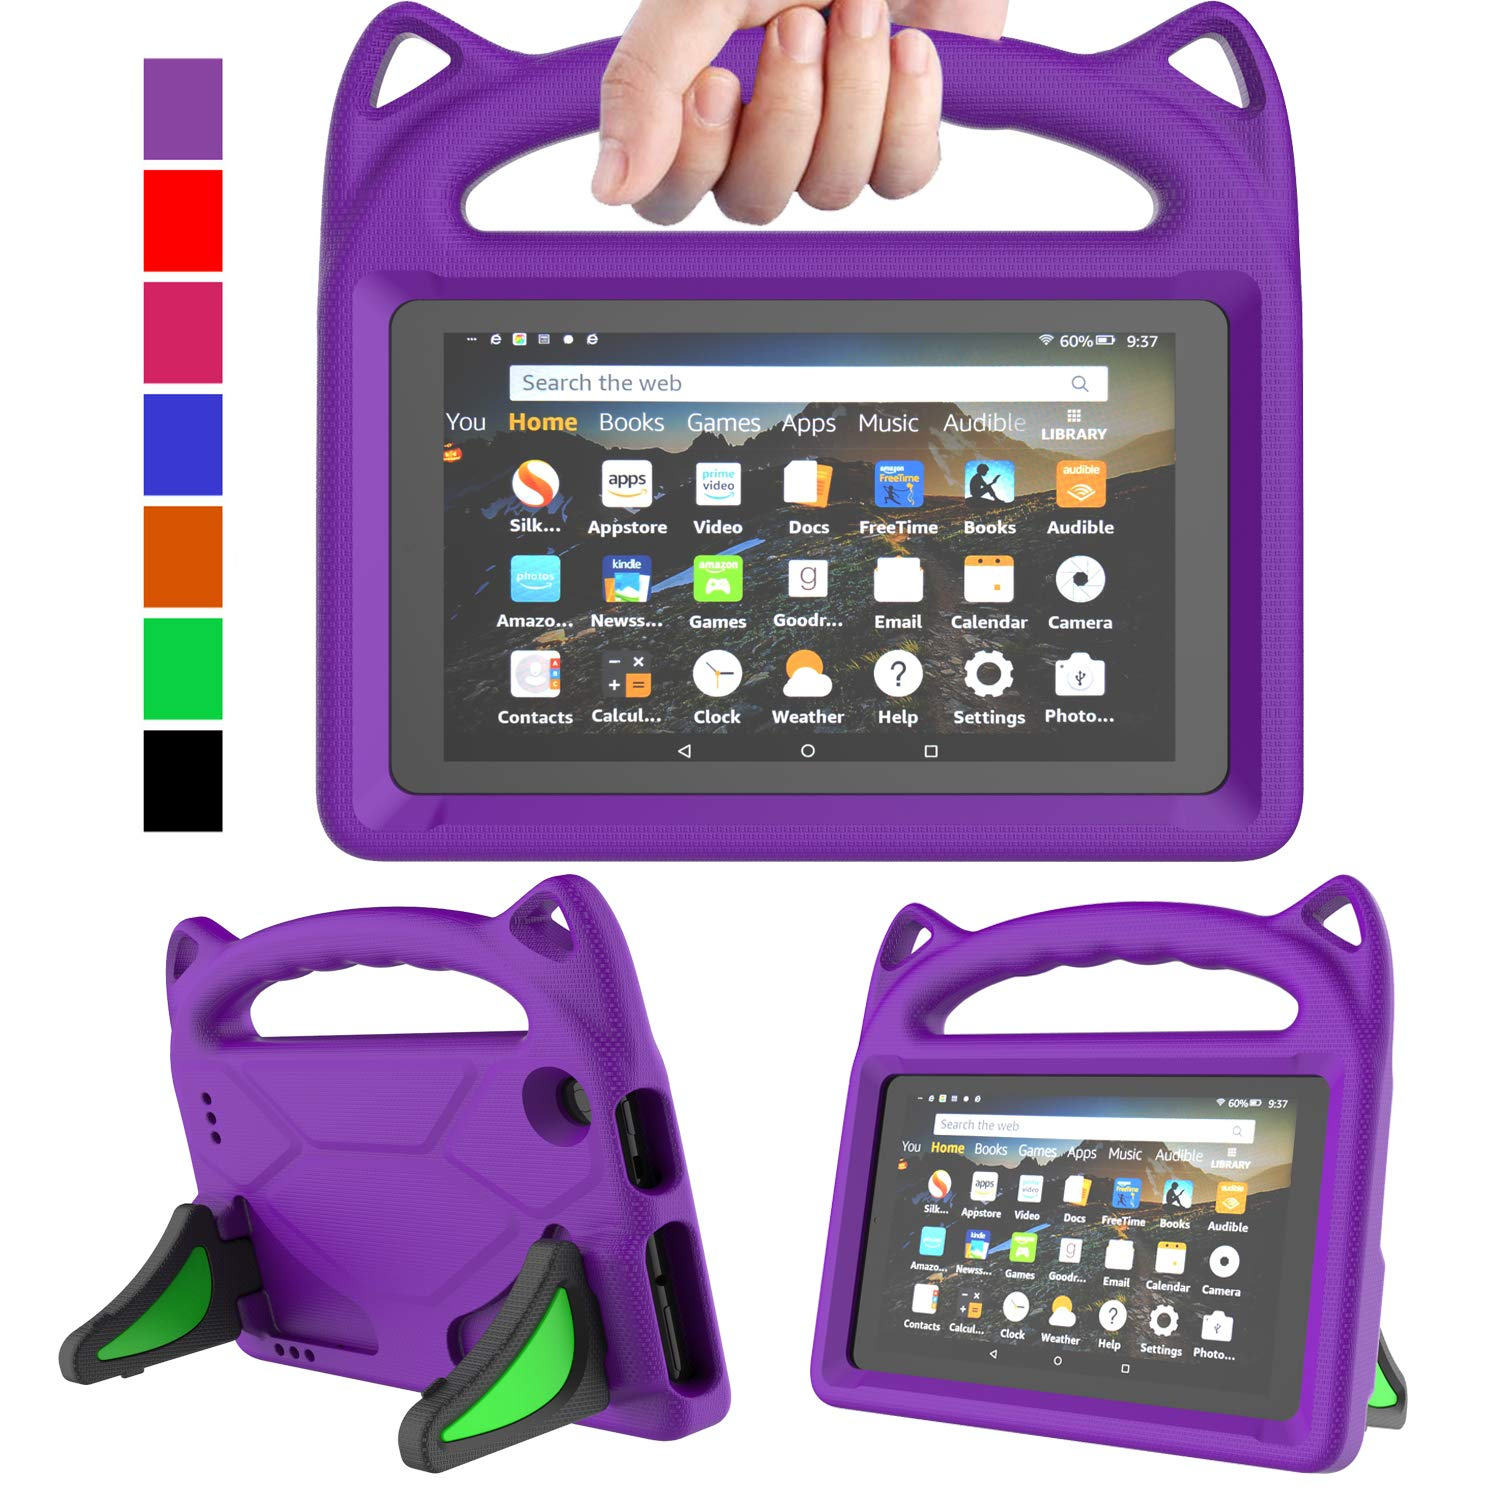 """MENZO Kids Case for All-New Fire 7 Tablet (9th Generation - 2019 Release), Light Weight Shockproof Handle Stand Kids Friendly Case for Amazon Fire 7 2019 & 2017 (7"""" Display), Purple"""